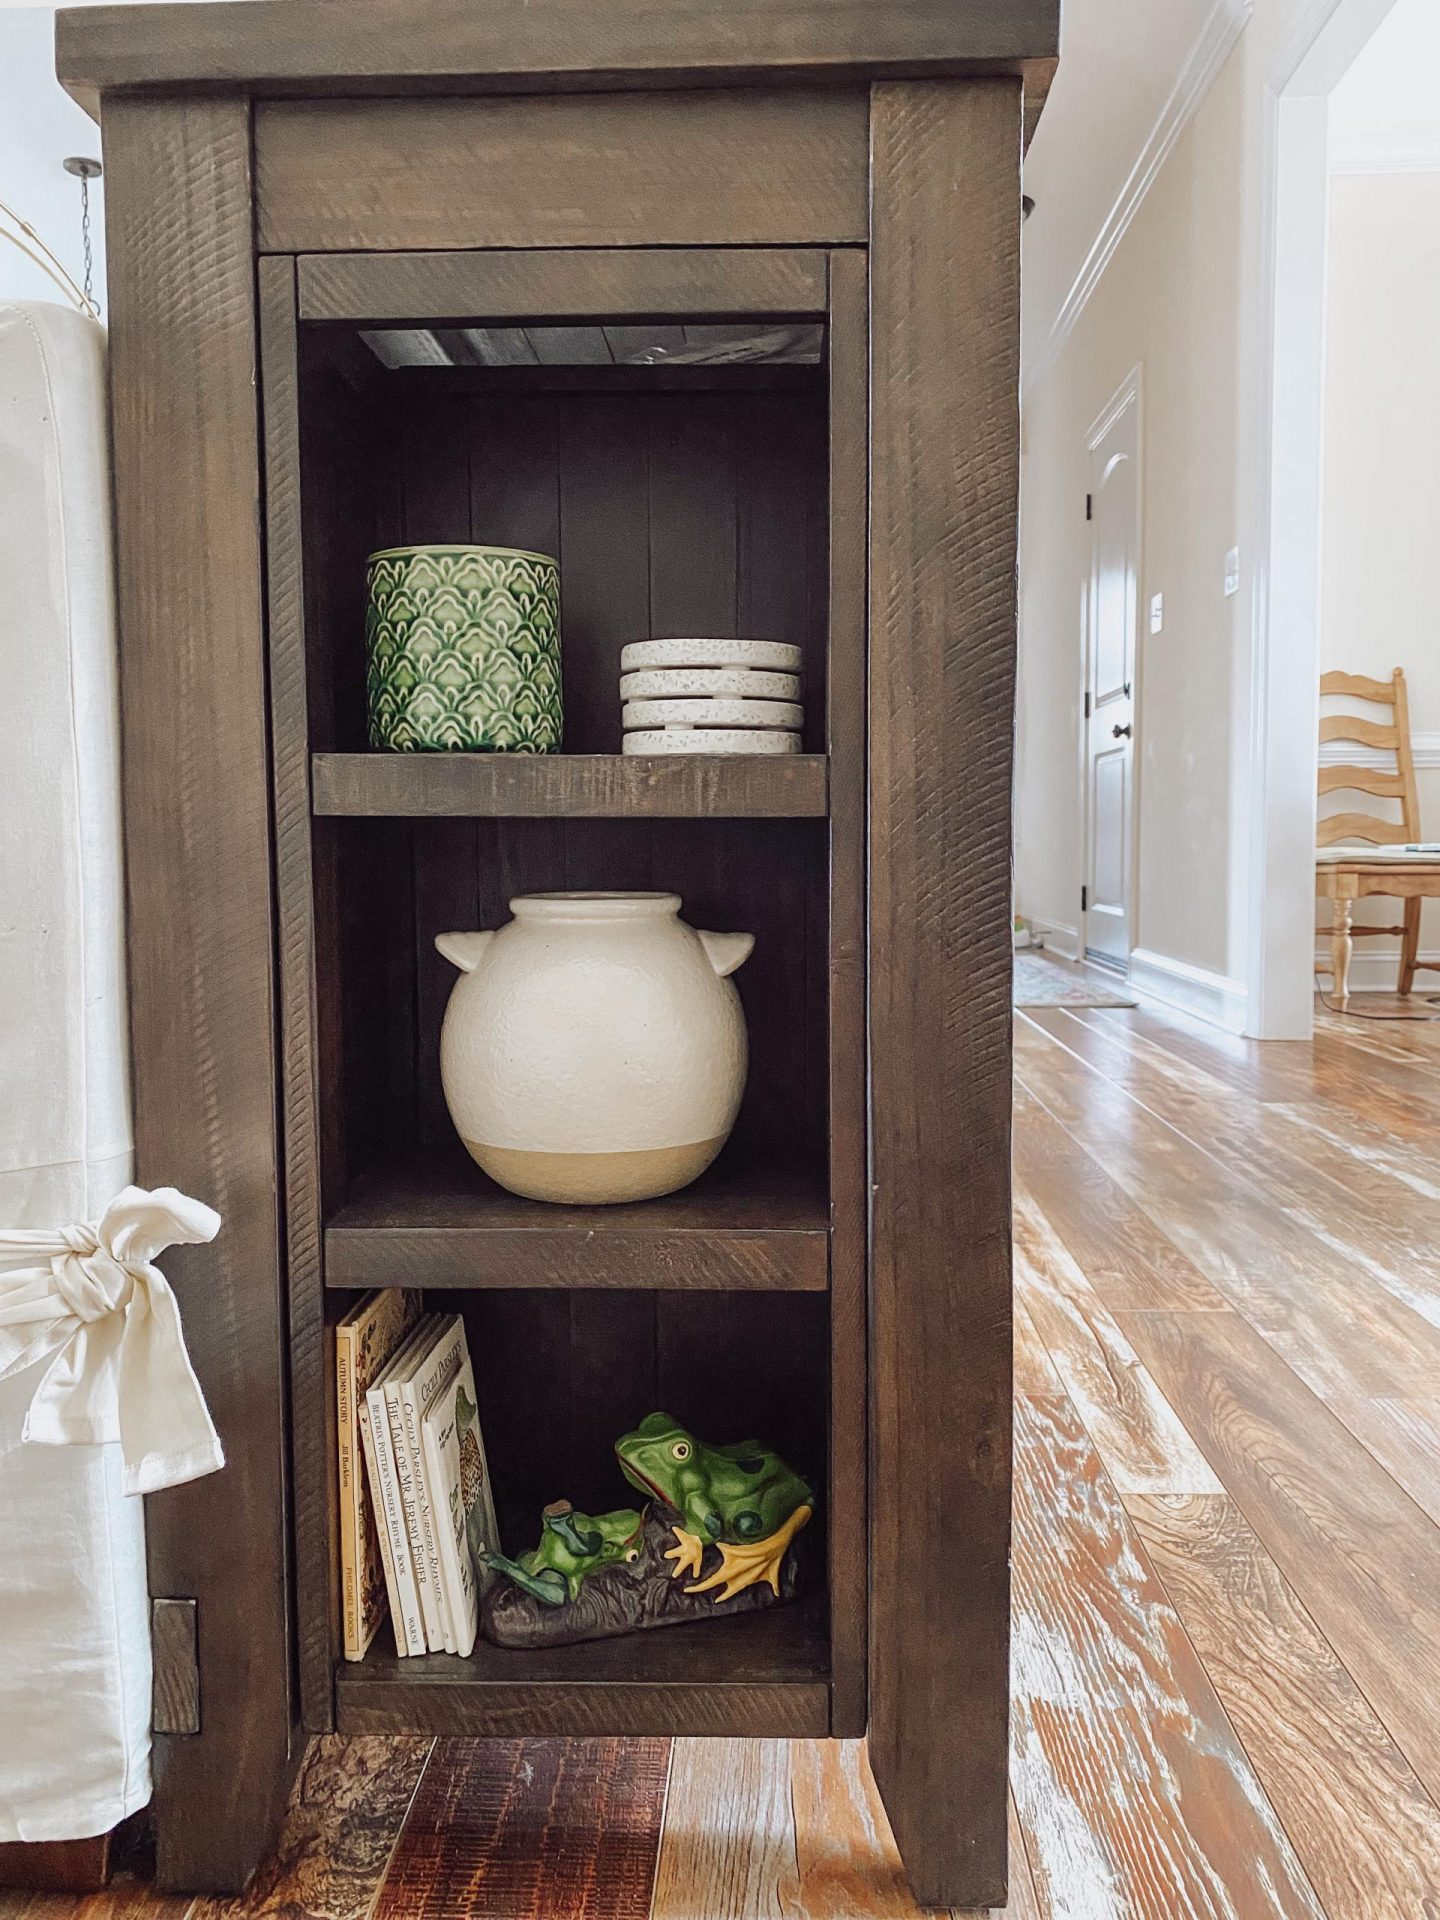 NC blogger Rebecca Lately shares her recent home purchases from Target and Amazon, including pieces from the Studio McGee line.